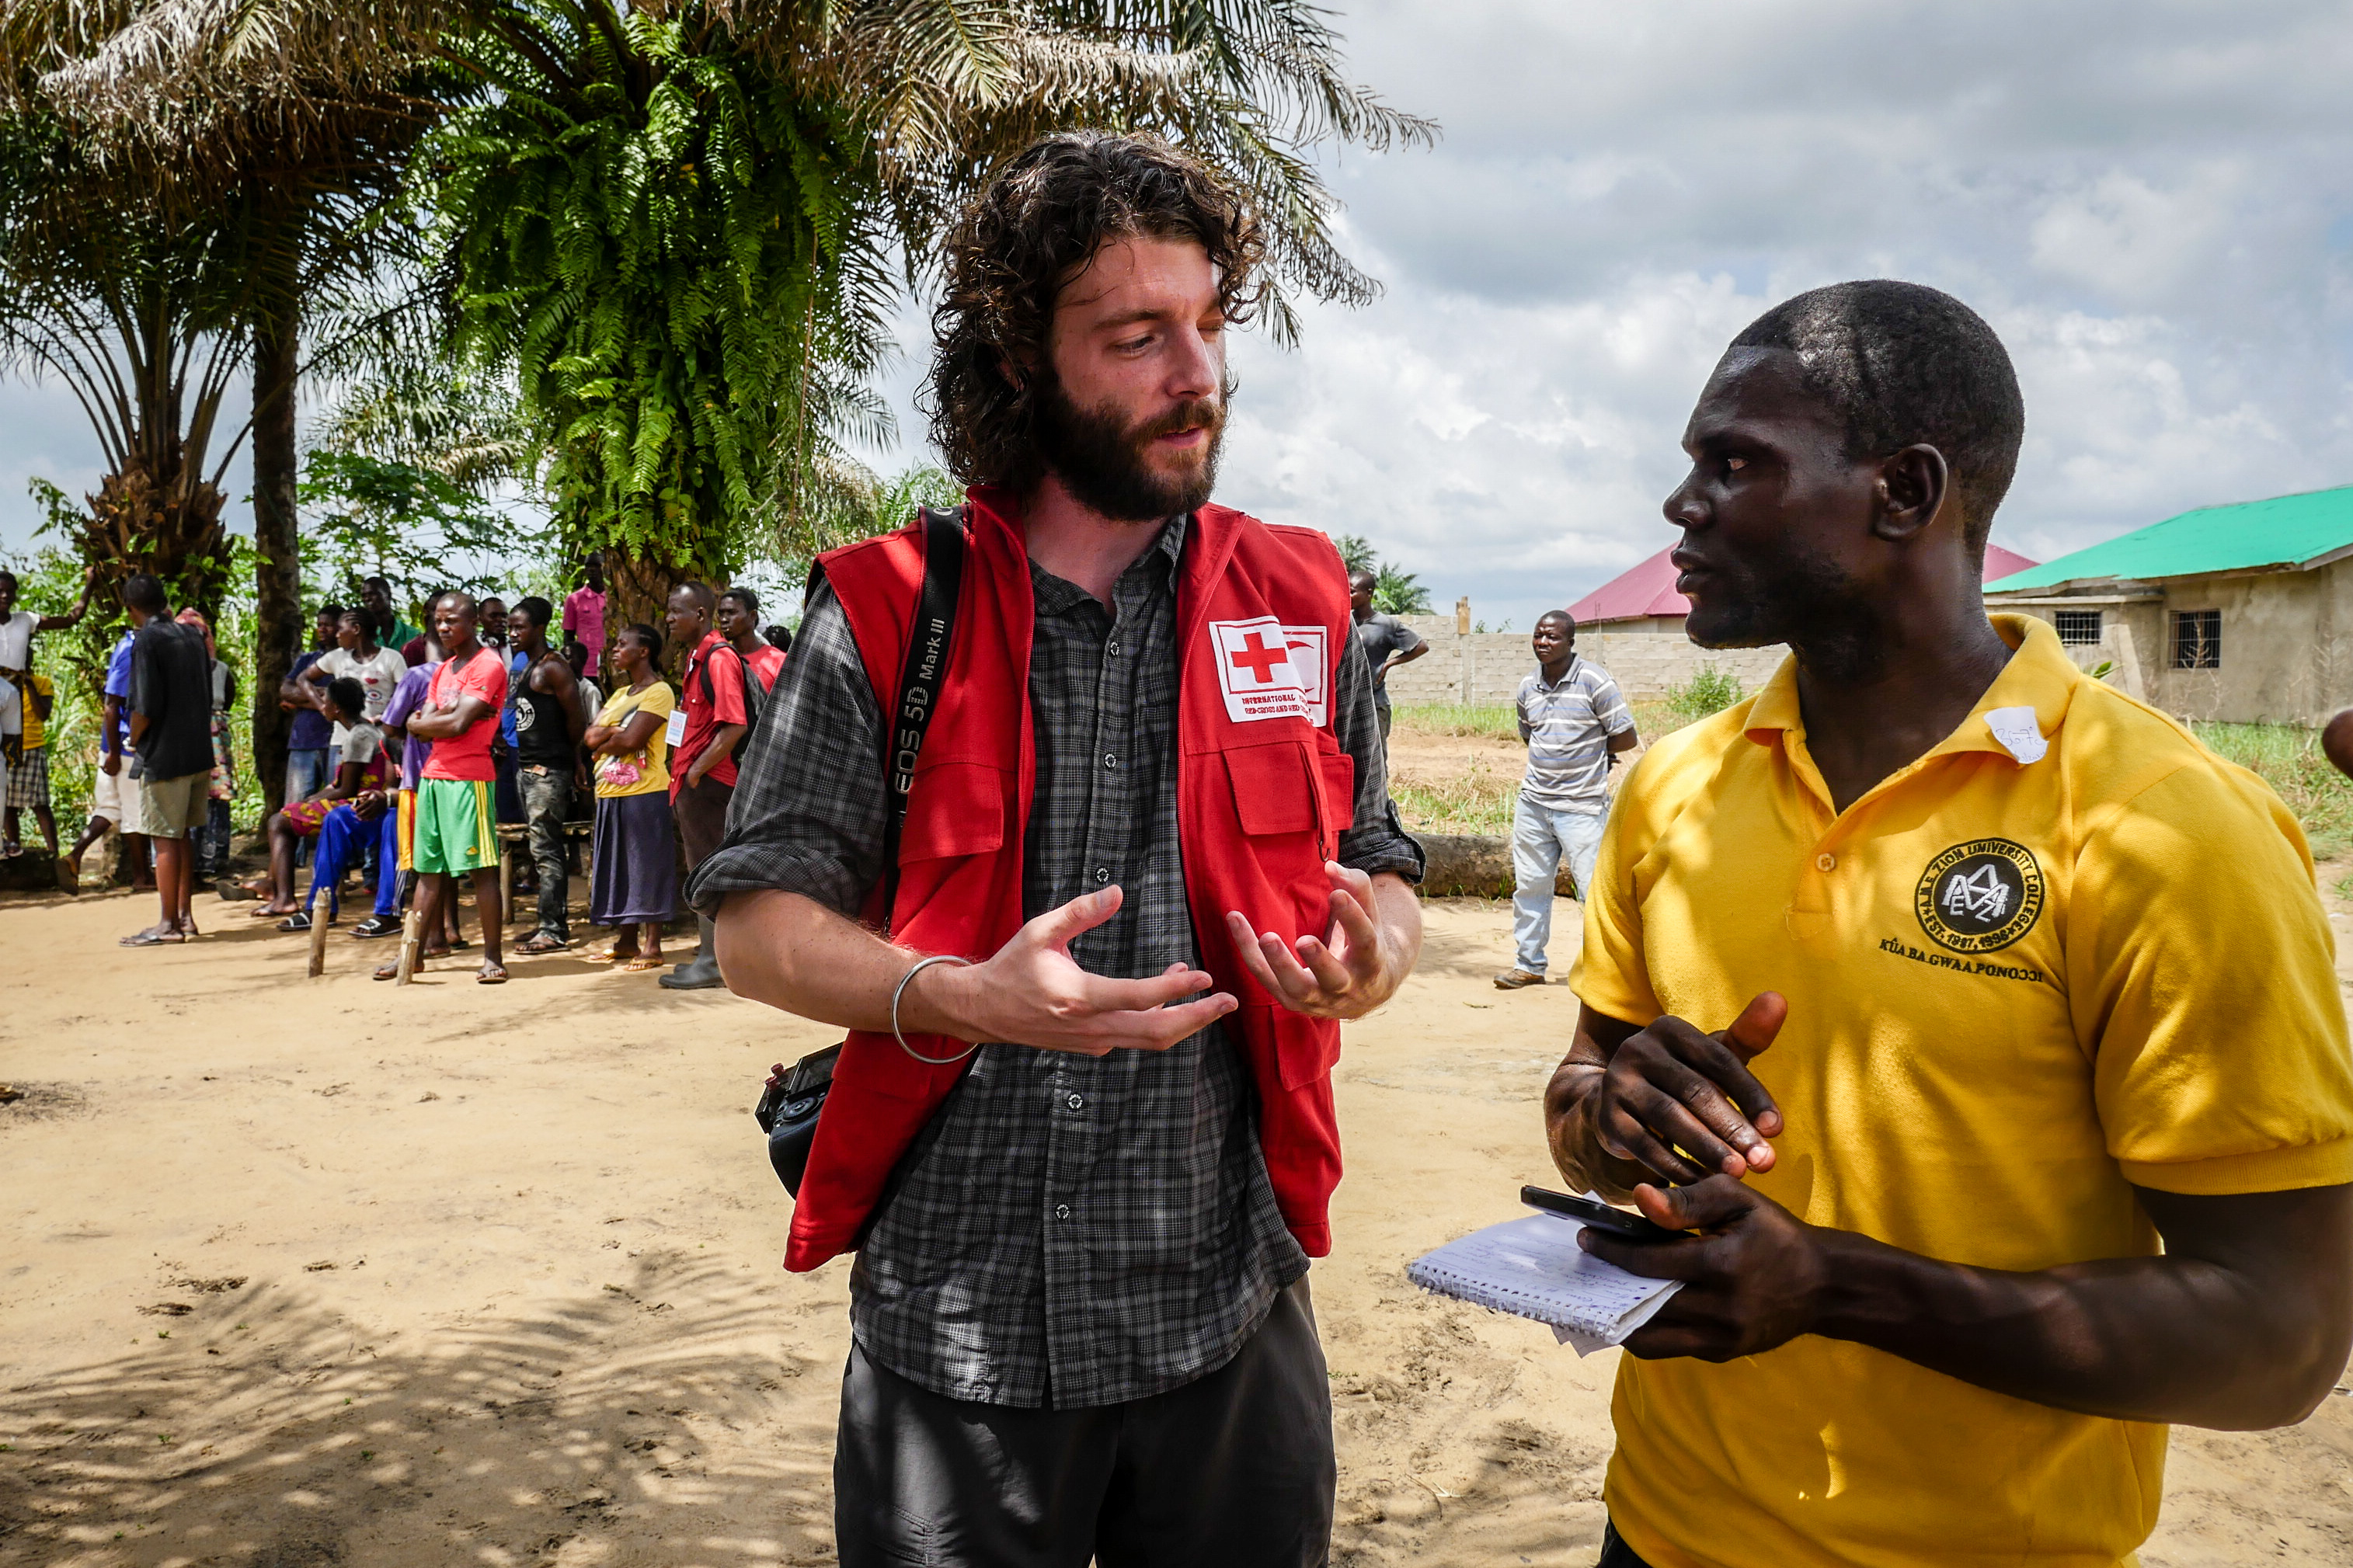 Irish Red Cross staff in Liberia + west Africa + Ebola